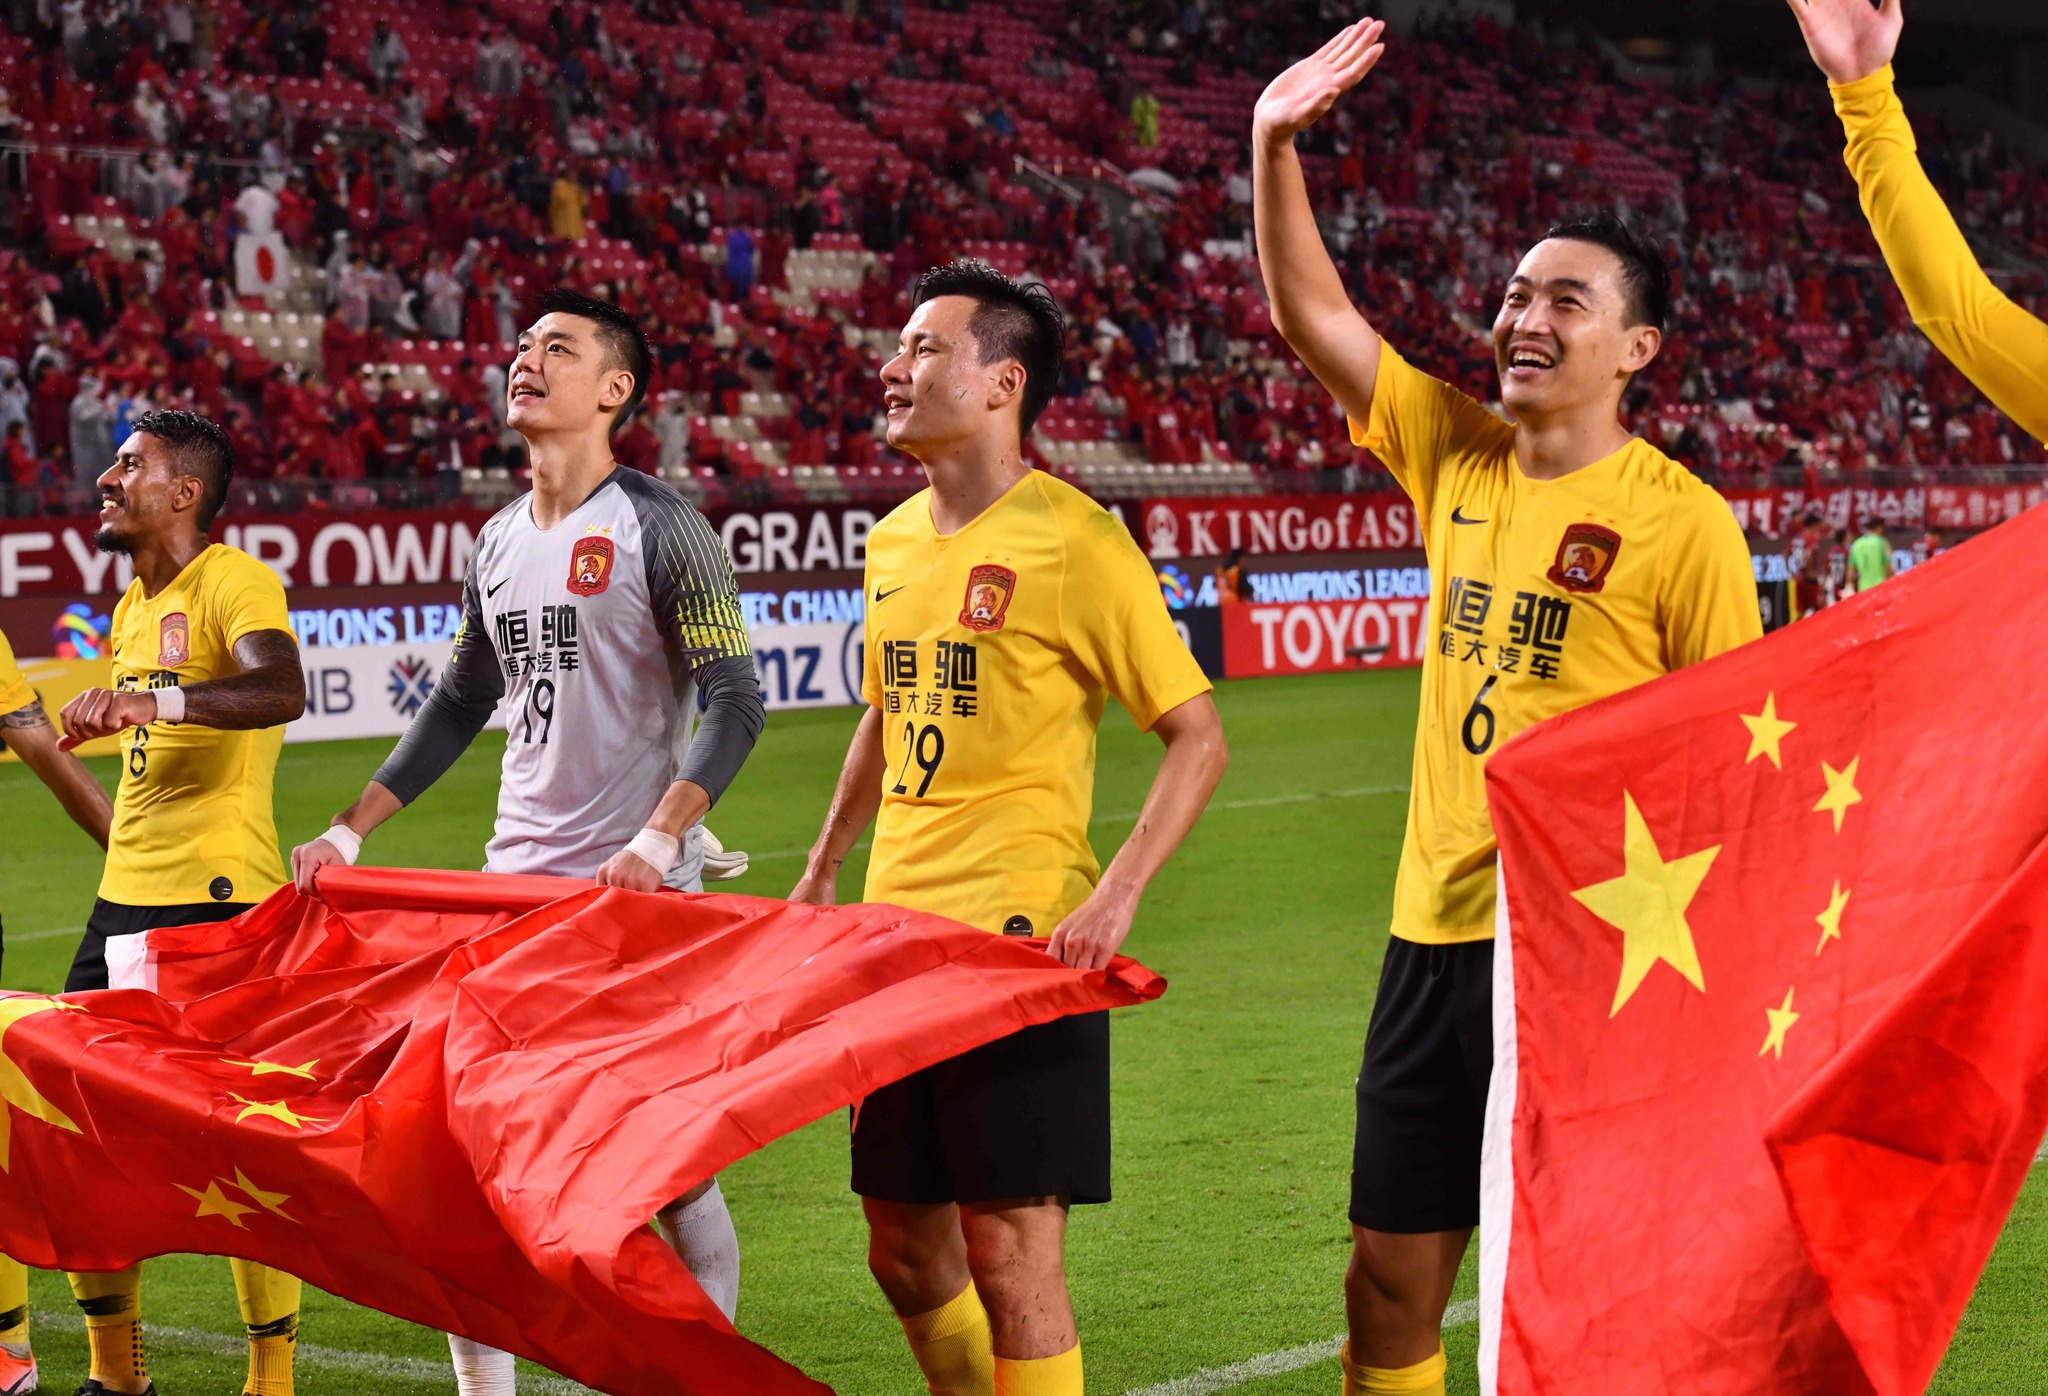 Guangzhous defender Feng Xiaoting (R), forward Gao Lin (2nd R), goalkeeper Zeng Cheng (2nd L) and midfielder Paulinho (L) celebrate their qualifying for the semi-finals with supporters after the AFC Champions League quarter-finals second leg football match between Kashima Antlers of Japan and Guangzhou <HIT>Evergrande</HIT> of China at the Kashima Stadium in Kashima, Ibaraki prefecture on September 18, 2019. (Photo by TOSHIFUMI KITAMURA / AFP)